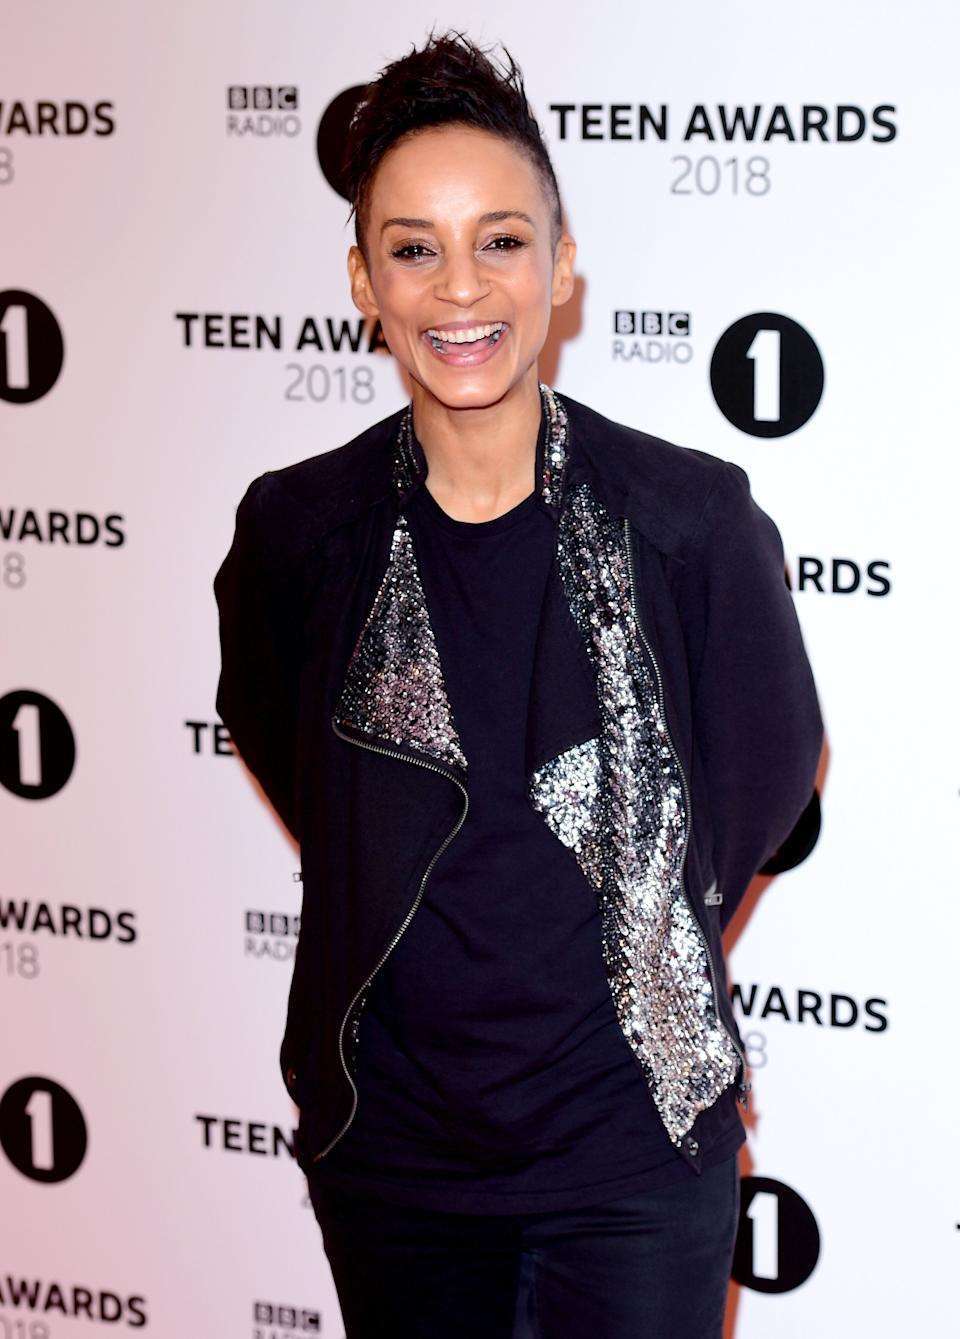 <strong>Known for:</strong>Being a Radio 1 DJ<br /><br />Adele was the final star added to The Sun's rumoured line-up, and while she's known for her work on the radio, she does have some reality TV experience already, having appeared on the same series of Big Brother as Alison Hammond and the late Jade Goody.